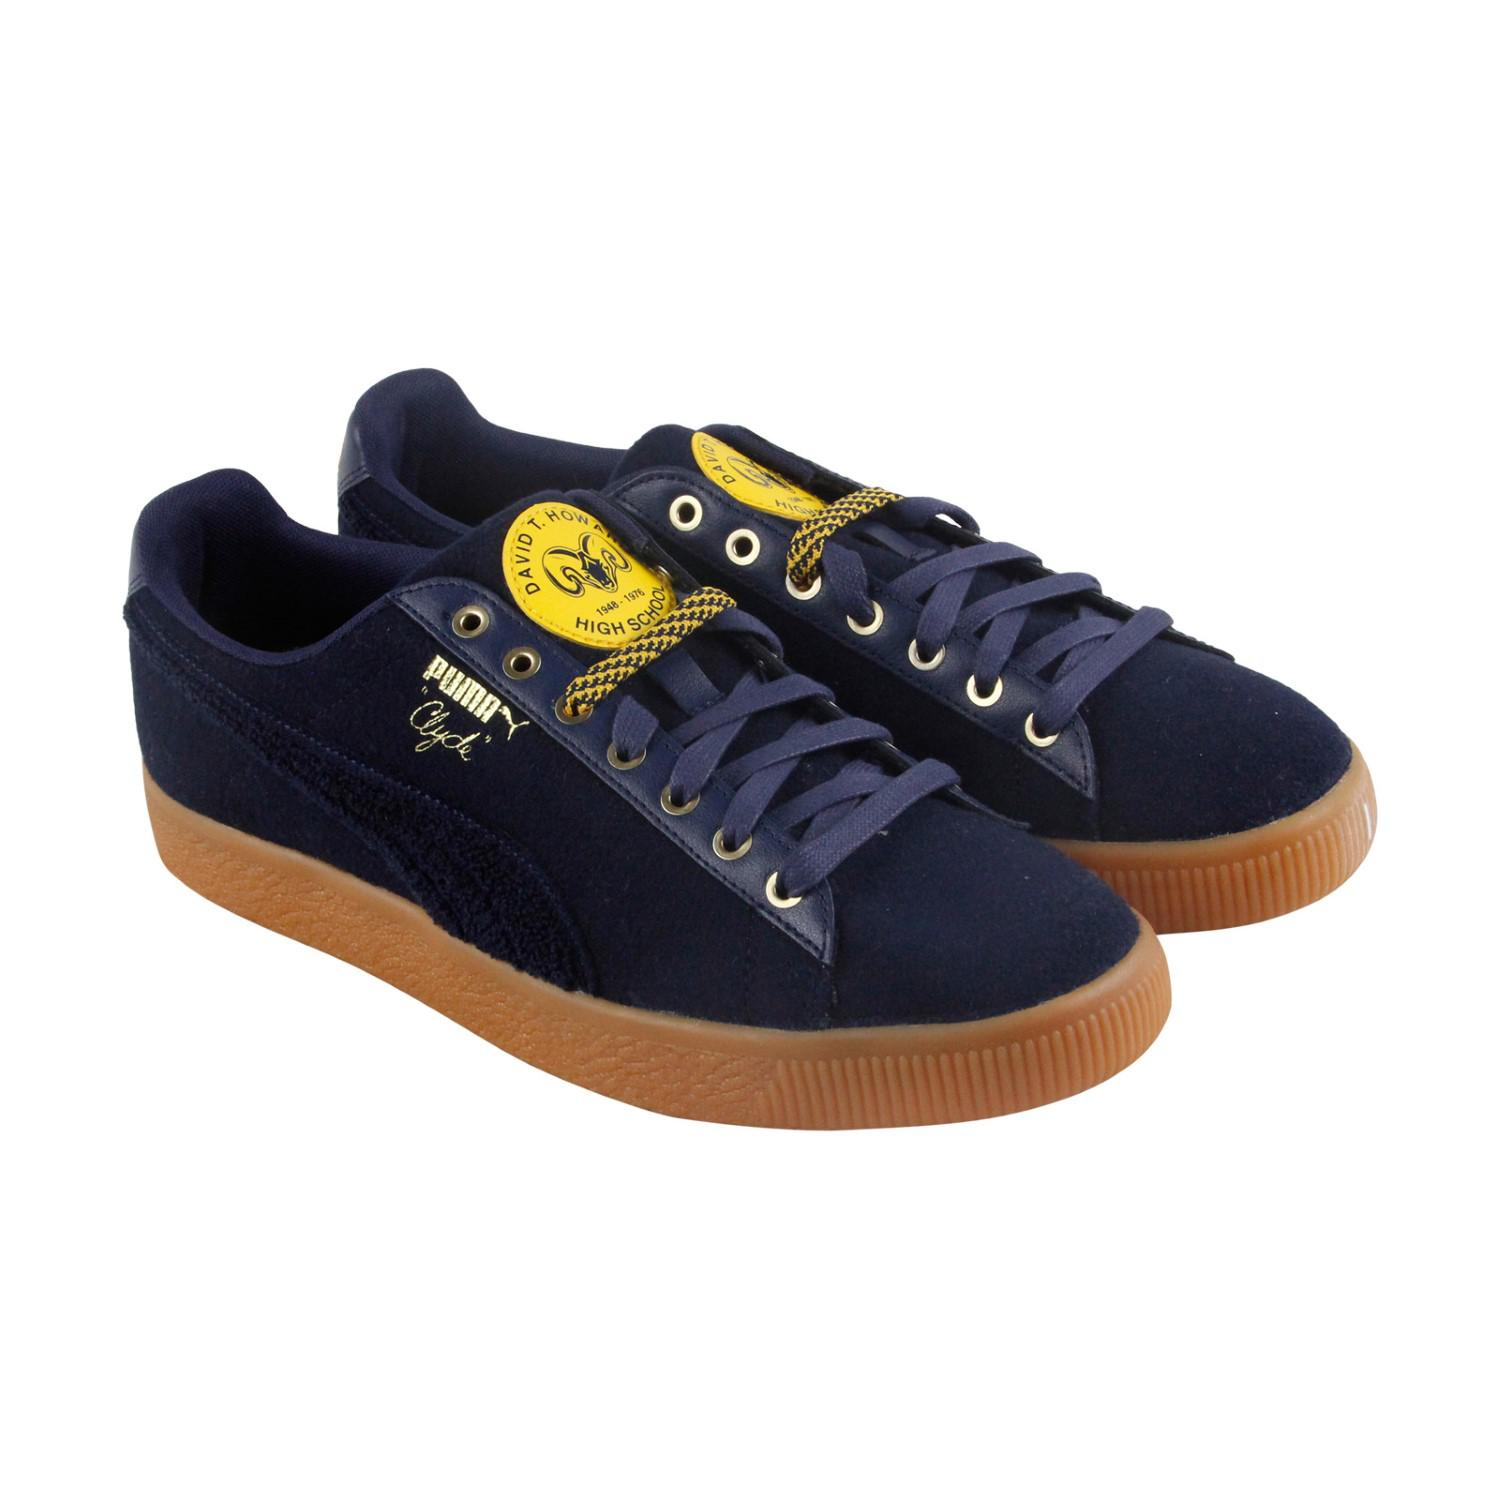 cd2811906babcc ... Lyst - Puma Clyde Wool Bhm in Blue for Men - Save 17% ...